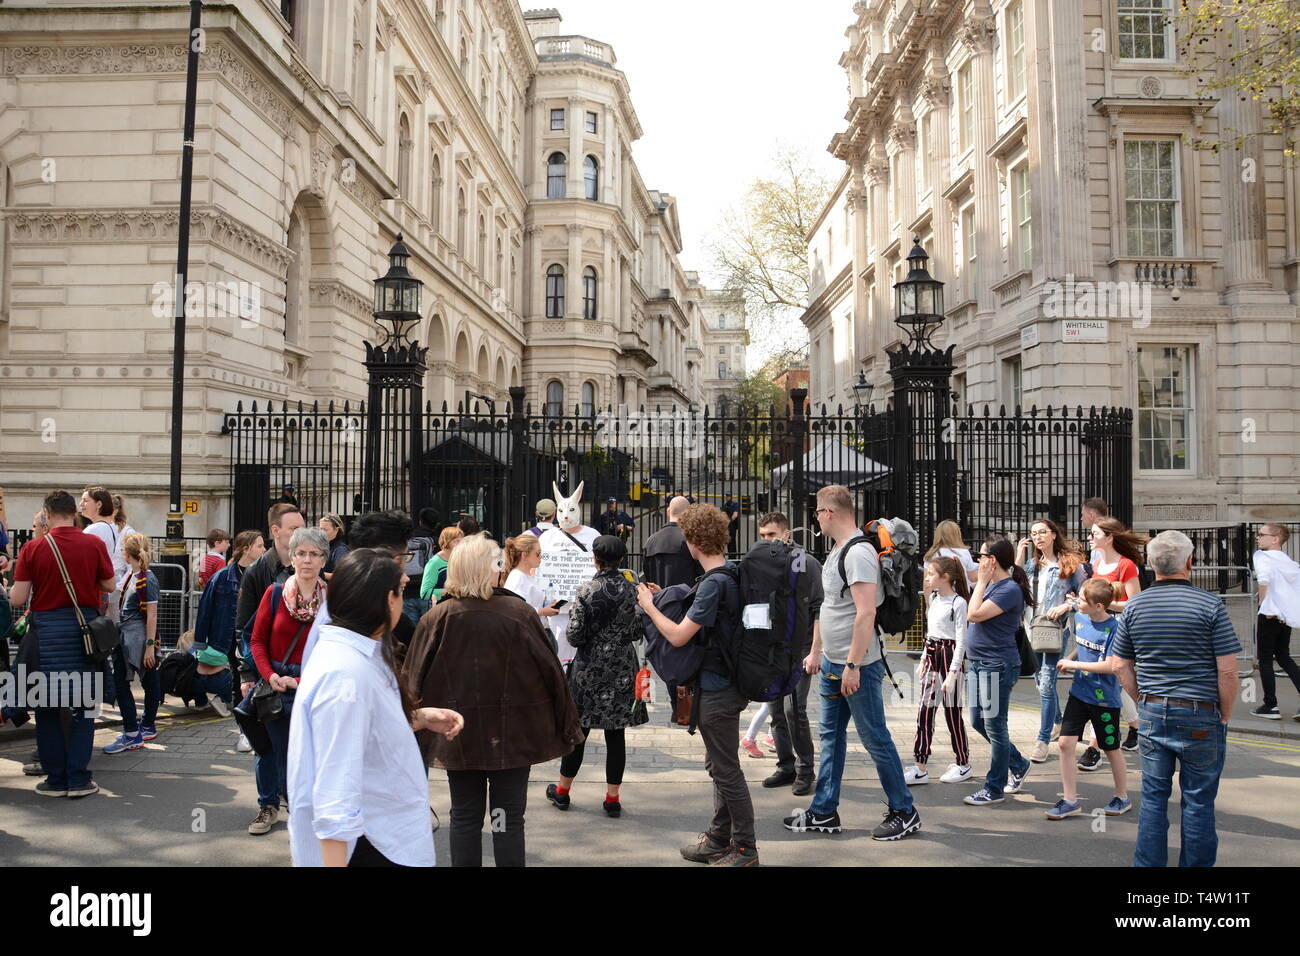 Extinction Rebellion rebel in Central London, bringing the centre of the city to a halt on 19th April 2019. Stock Photo